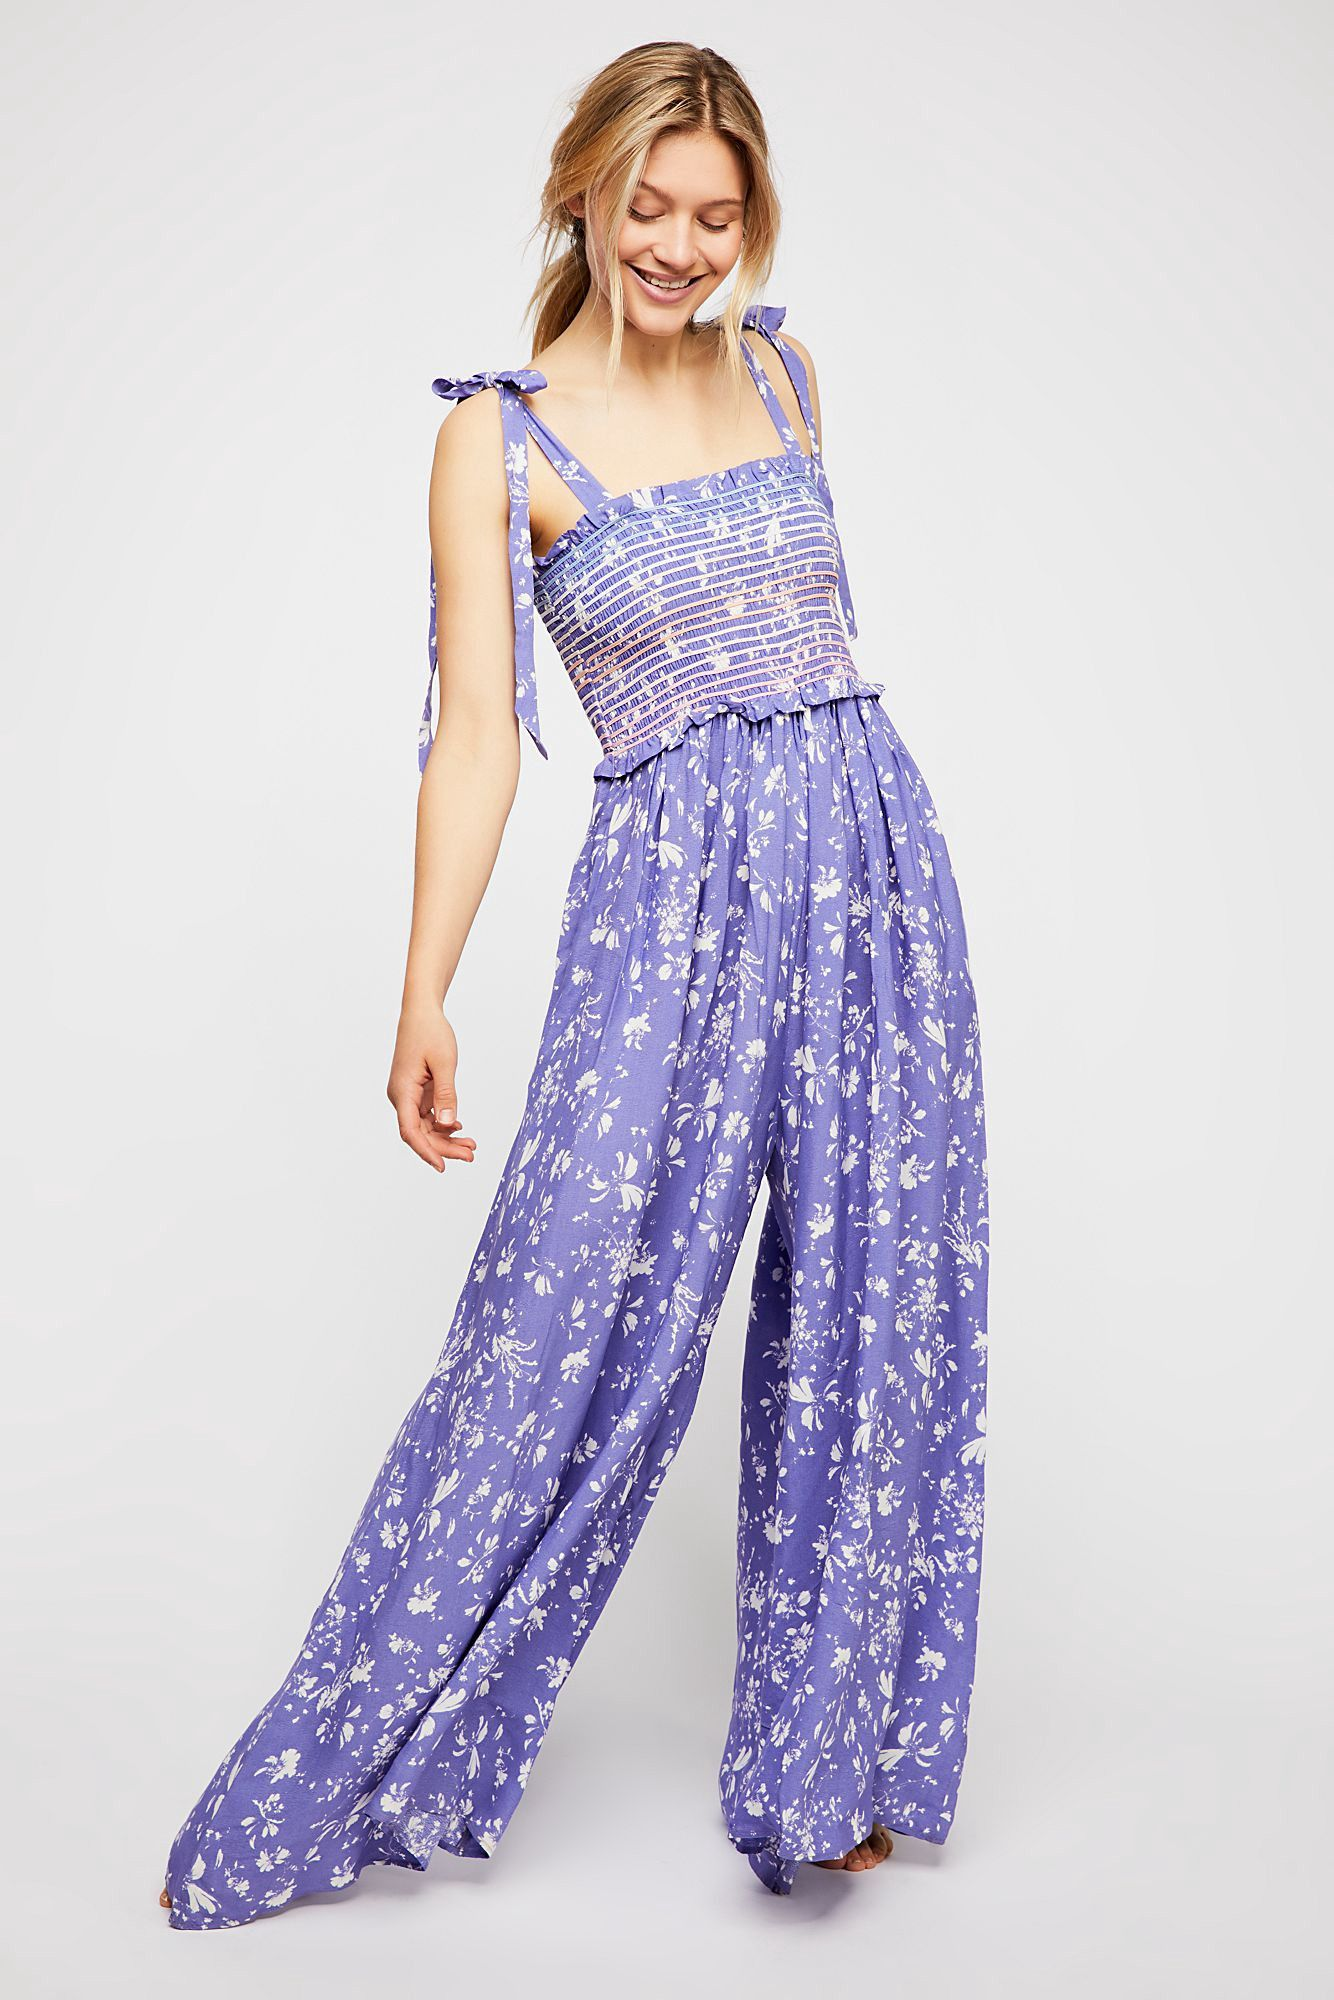 aed6e472e027 Free People Color My World Jumpsuit - Red Currant Combo Xs ...